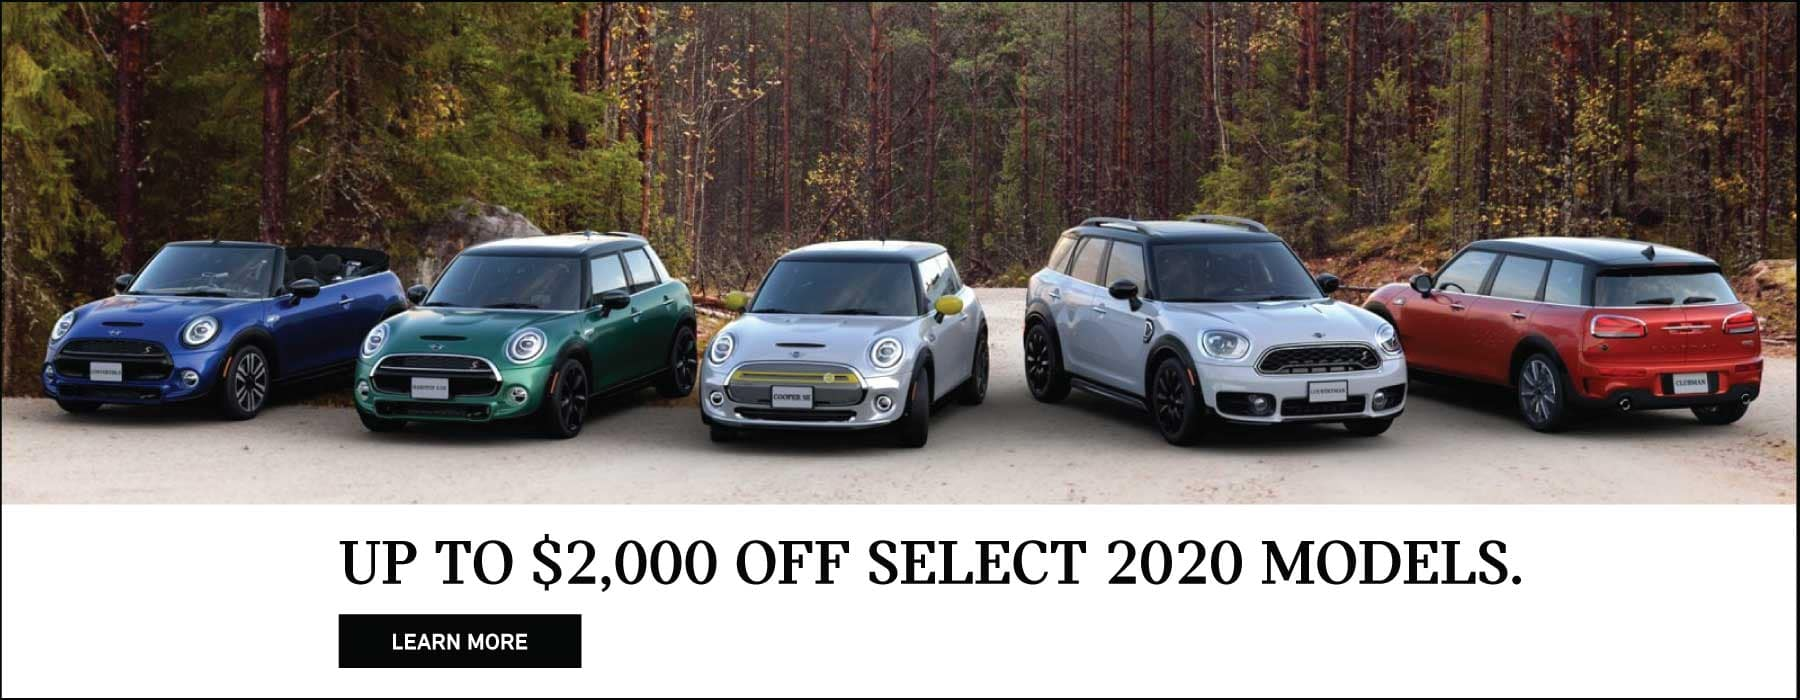 Up to $2000 off select MINI models